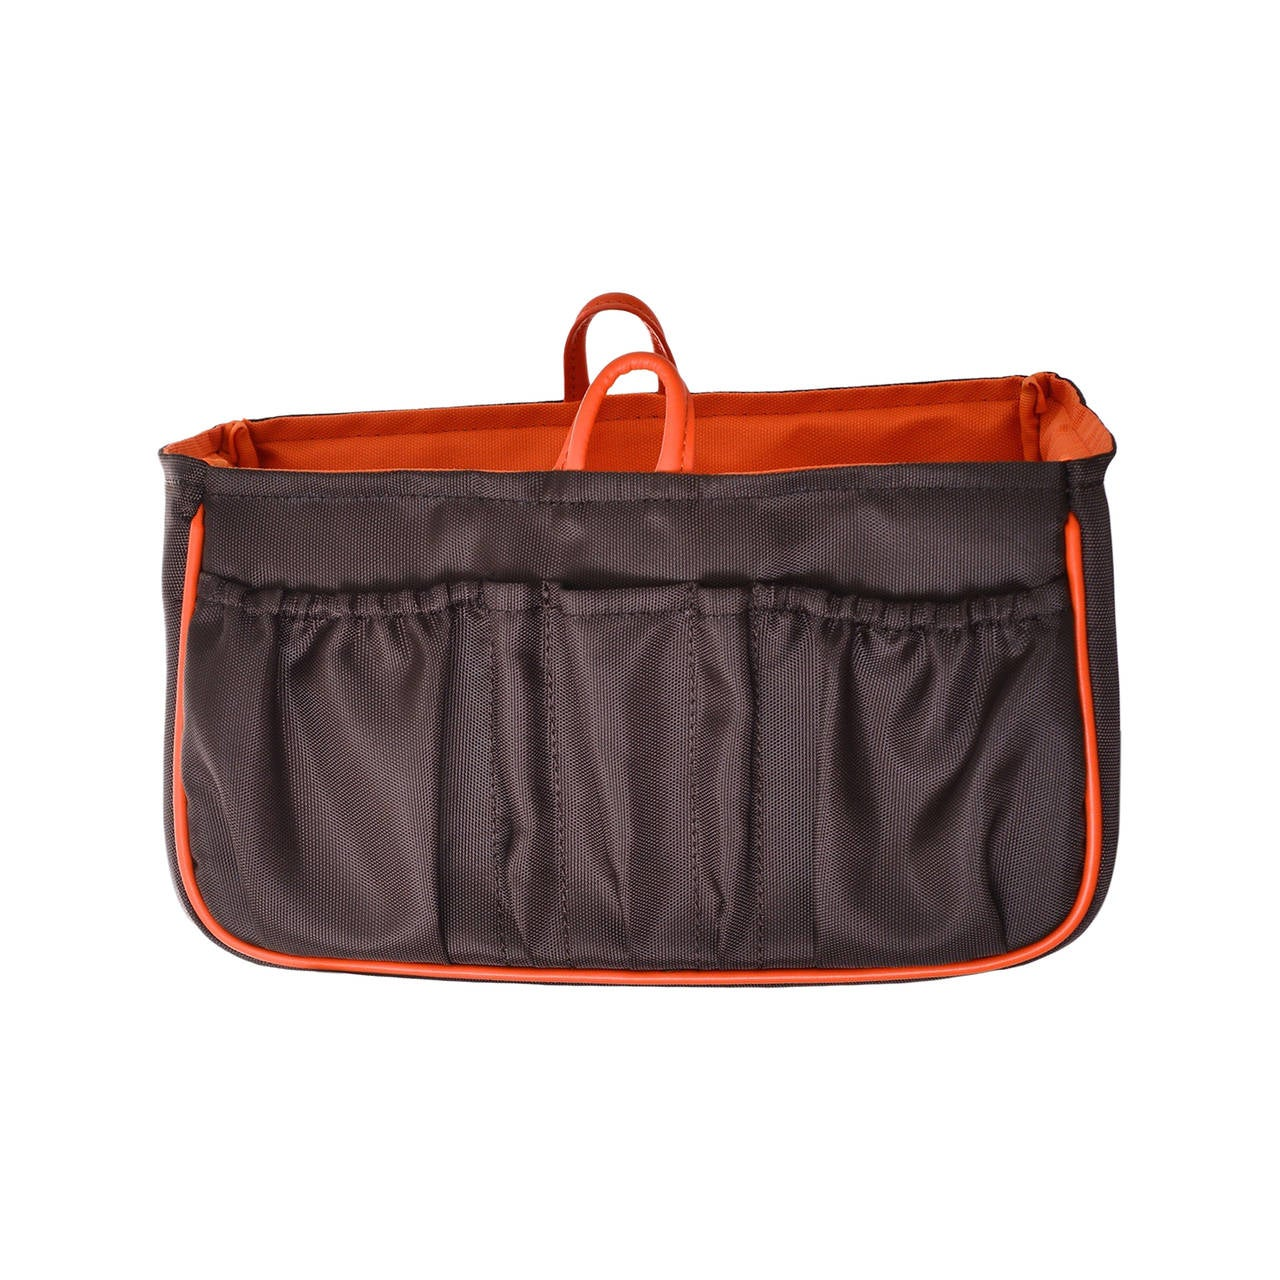 hermes replica bags for sale - JANEFINDS BAGINIZER SZ SMALL FOR HERMES BIRKIN 30cm/KELLY 35cm ...